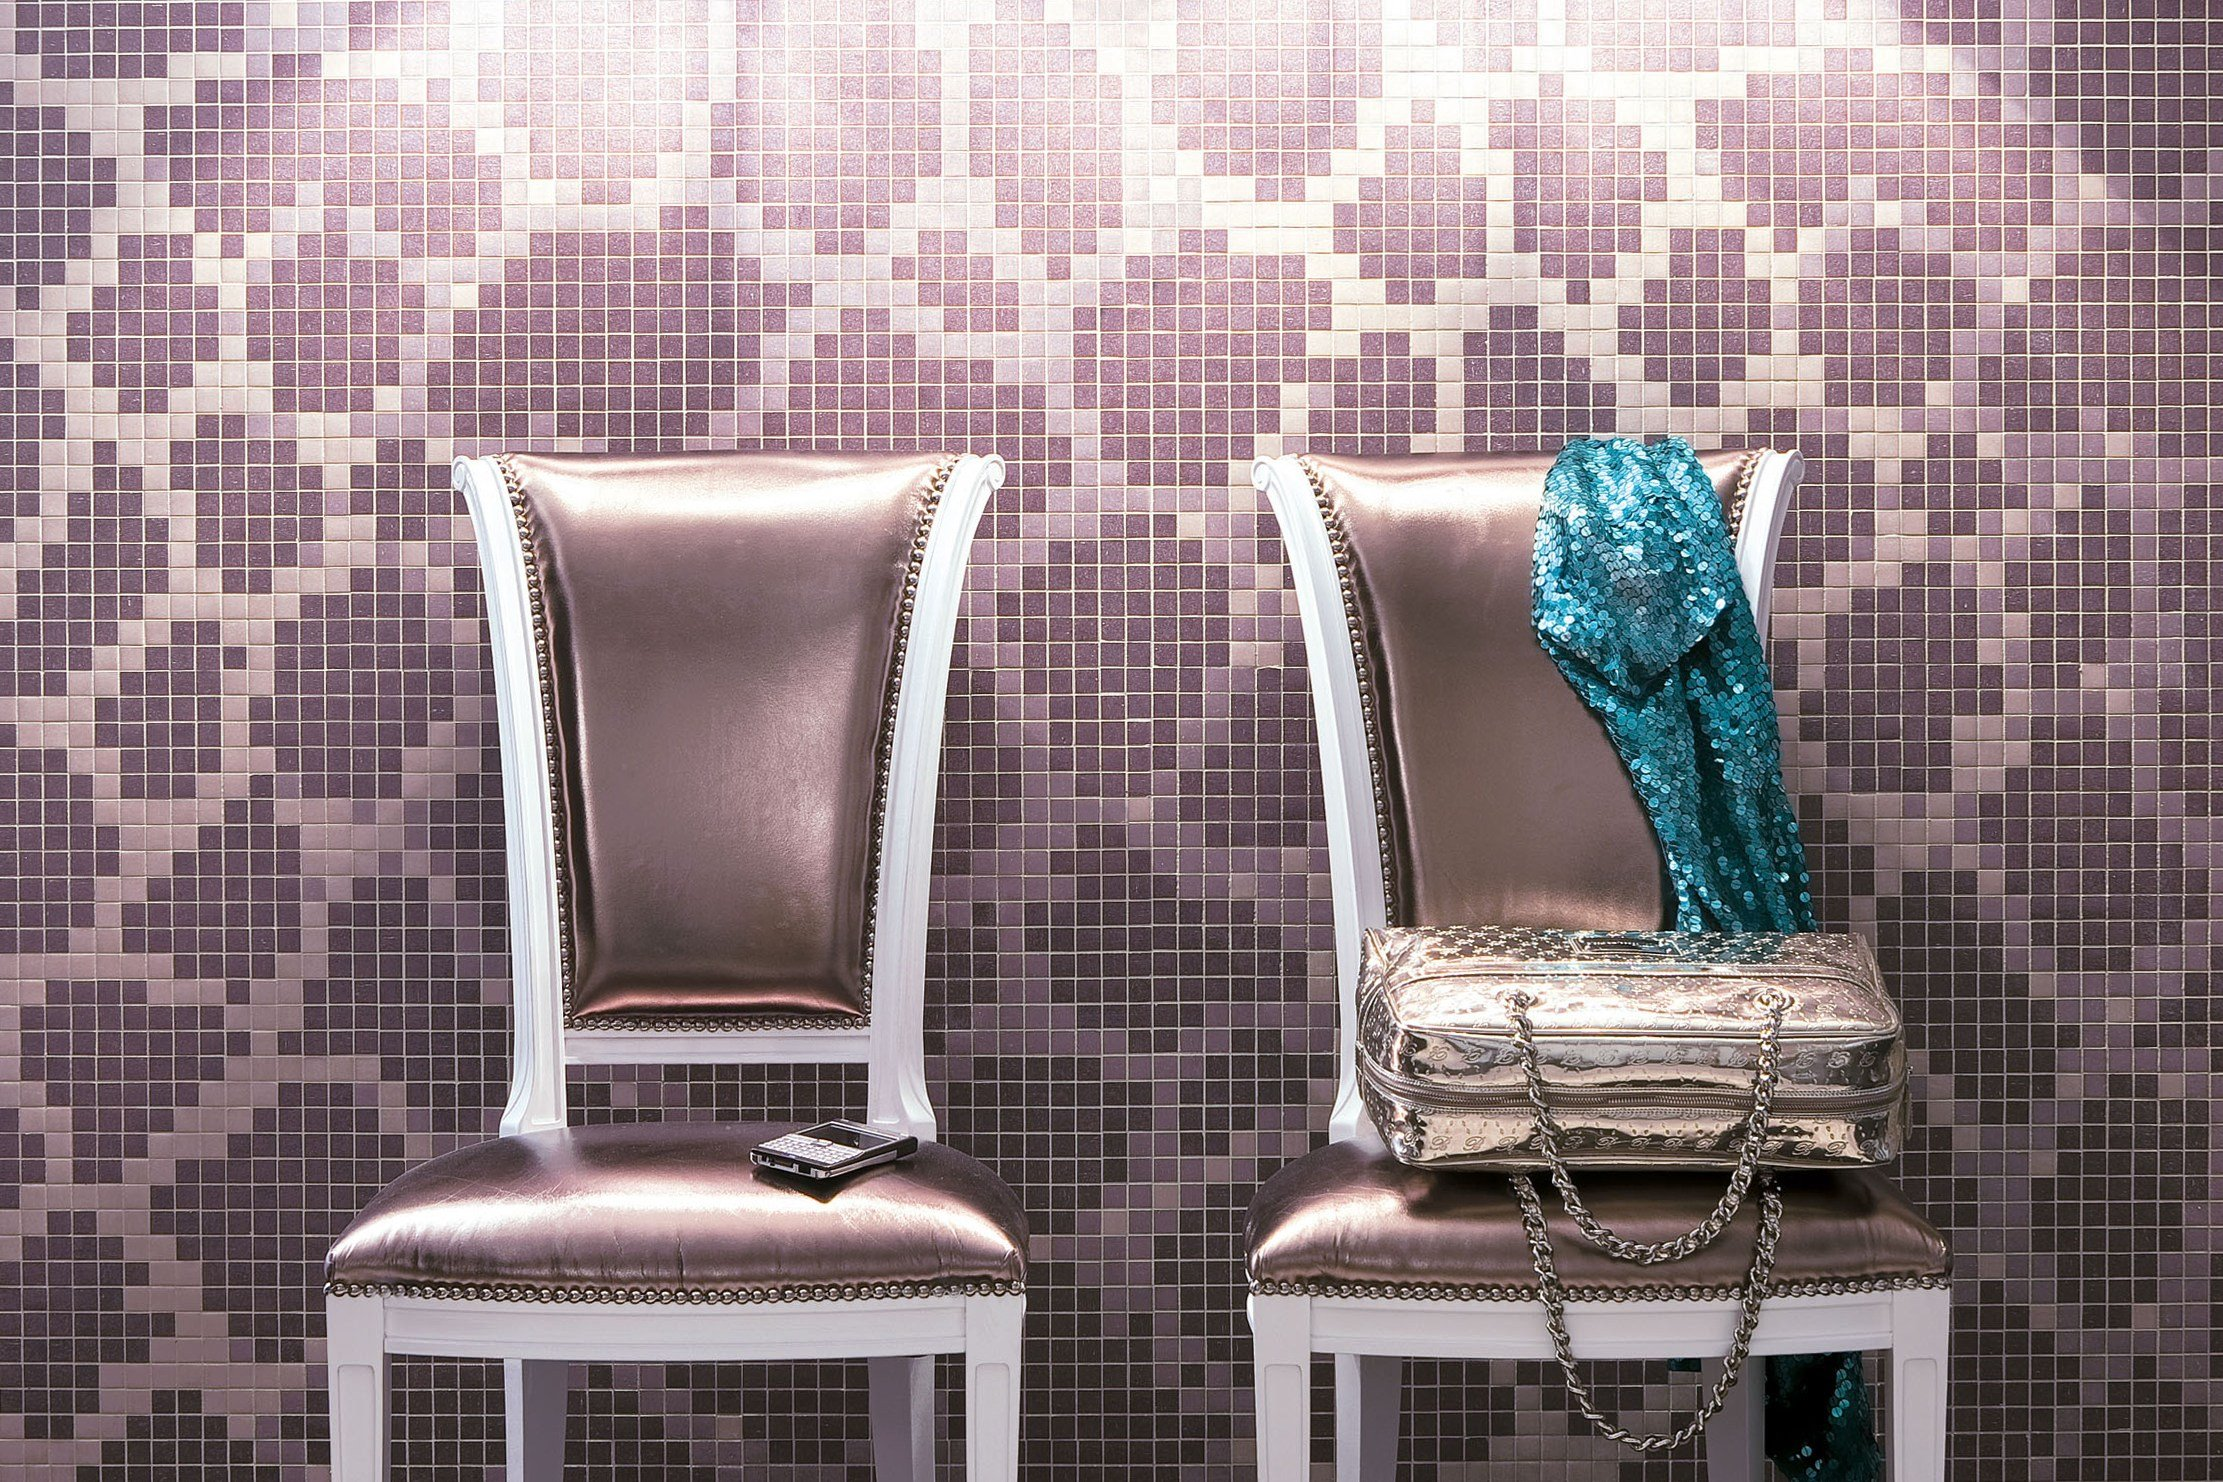 Mosaico in vetro wallpaper 1x1 by trend group for Mosaico group